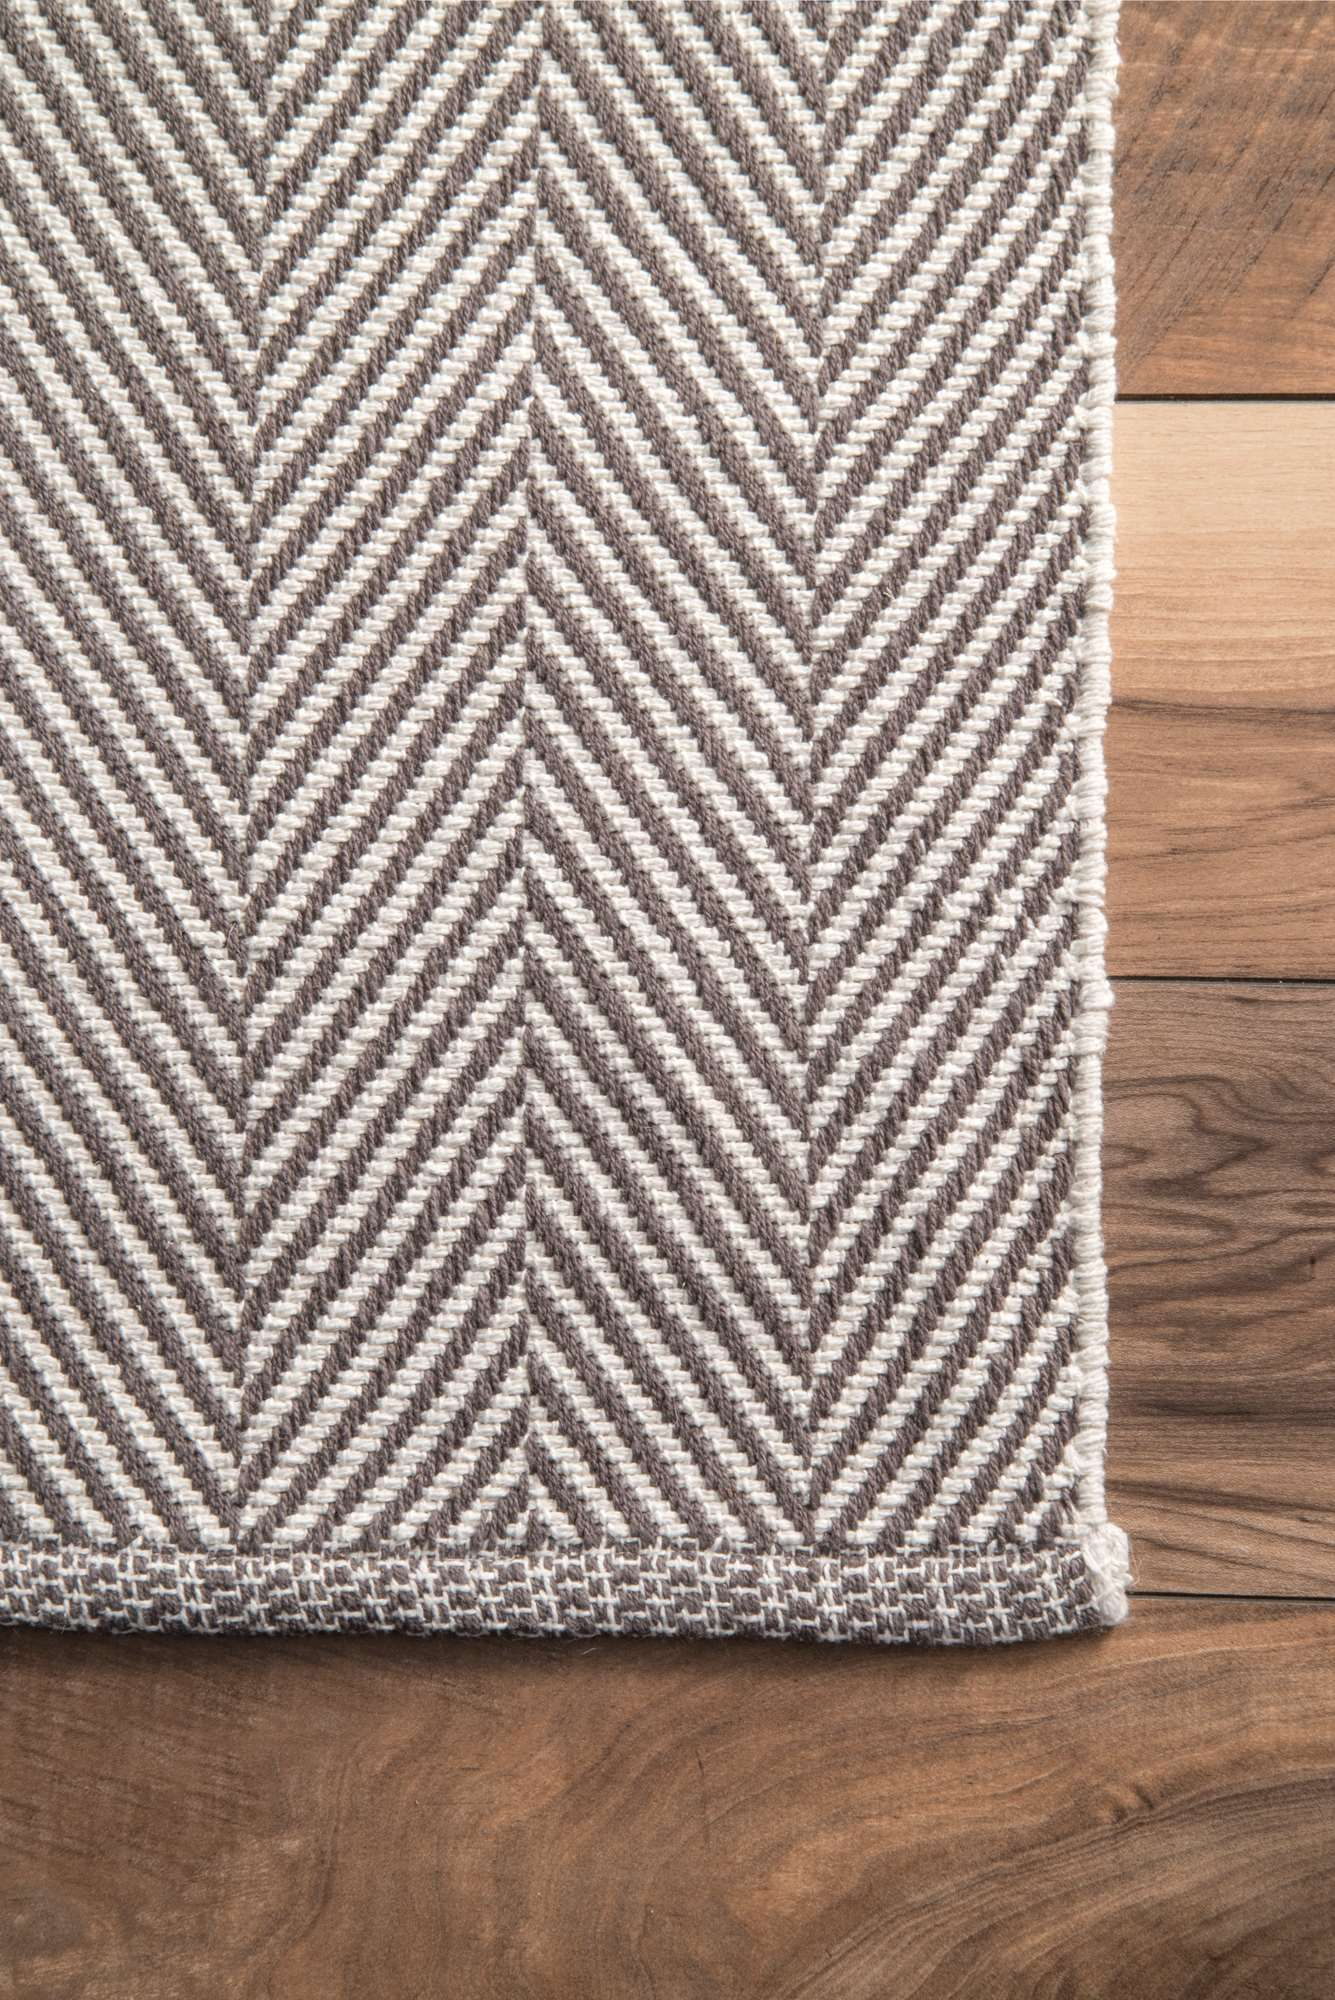 The No Pile, Handloomed, Flat Woven Rug Is Made Out Of Pure